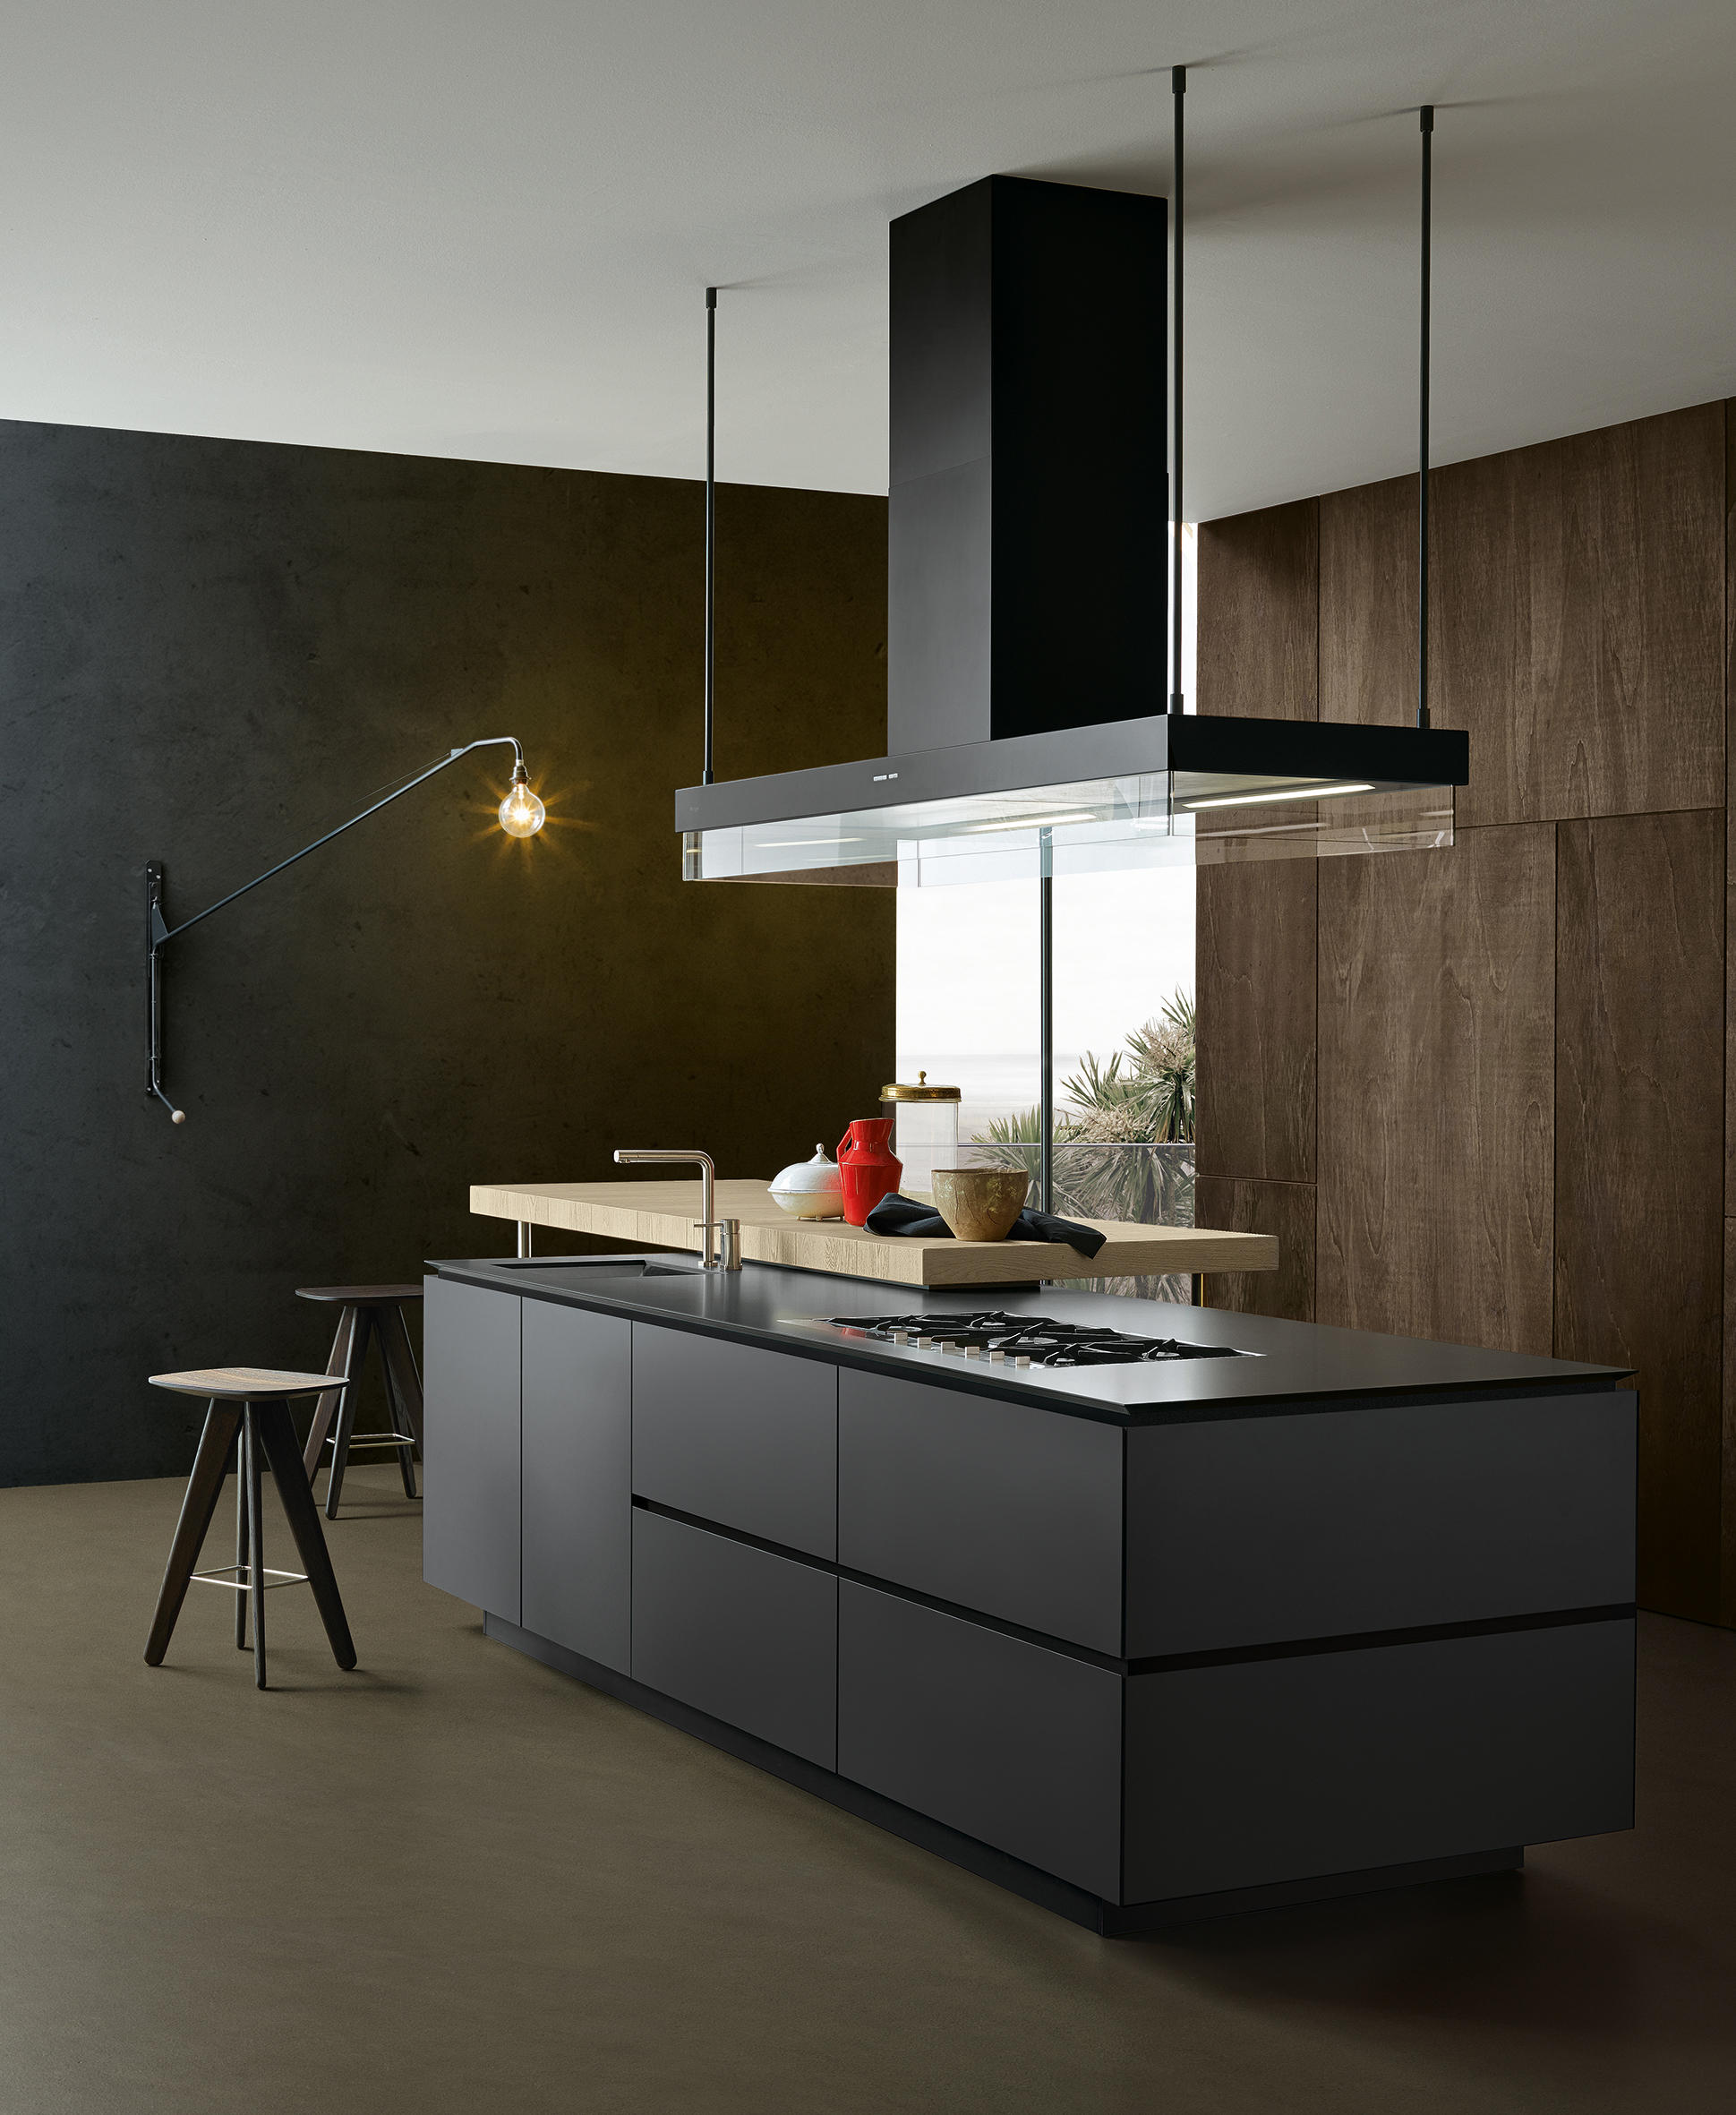 ARTEX - Cucine a isola Poliform | Architonic